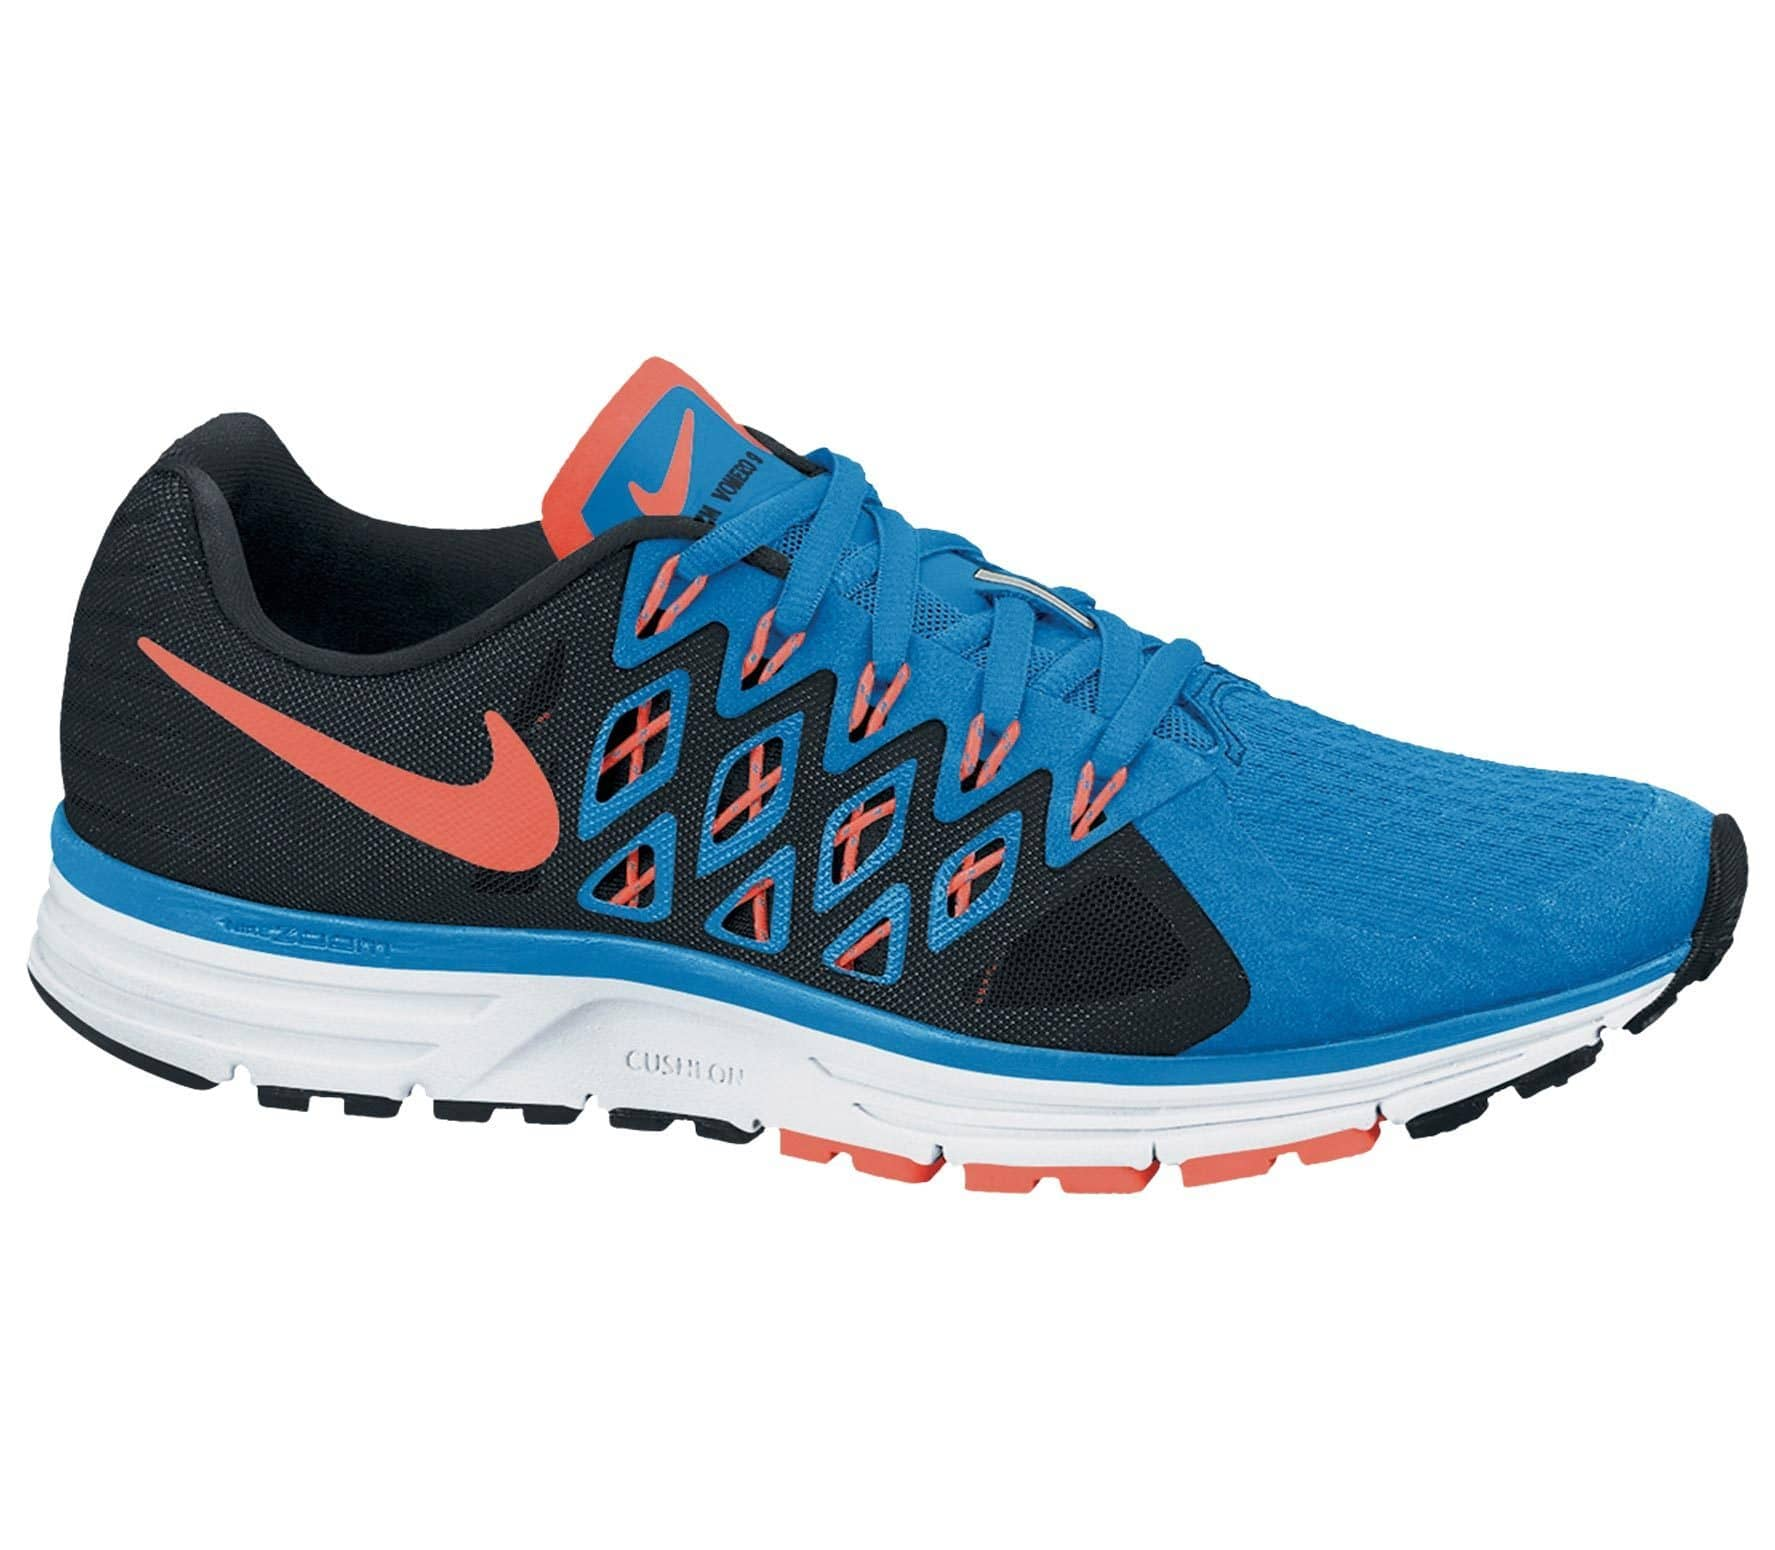 287c5d198f9 Nike - Zoom Vomero 9 men s running shoes (blue) - buy it at the ...